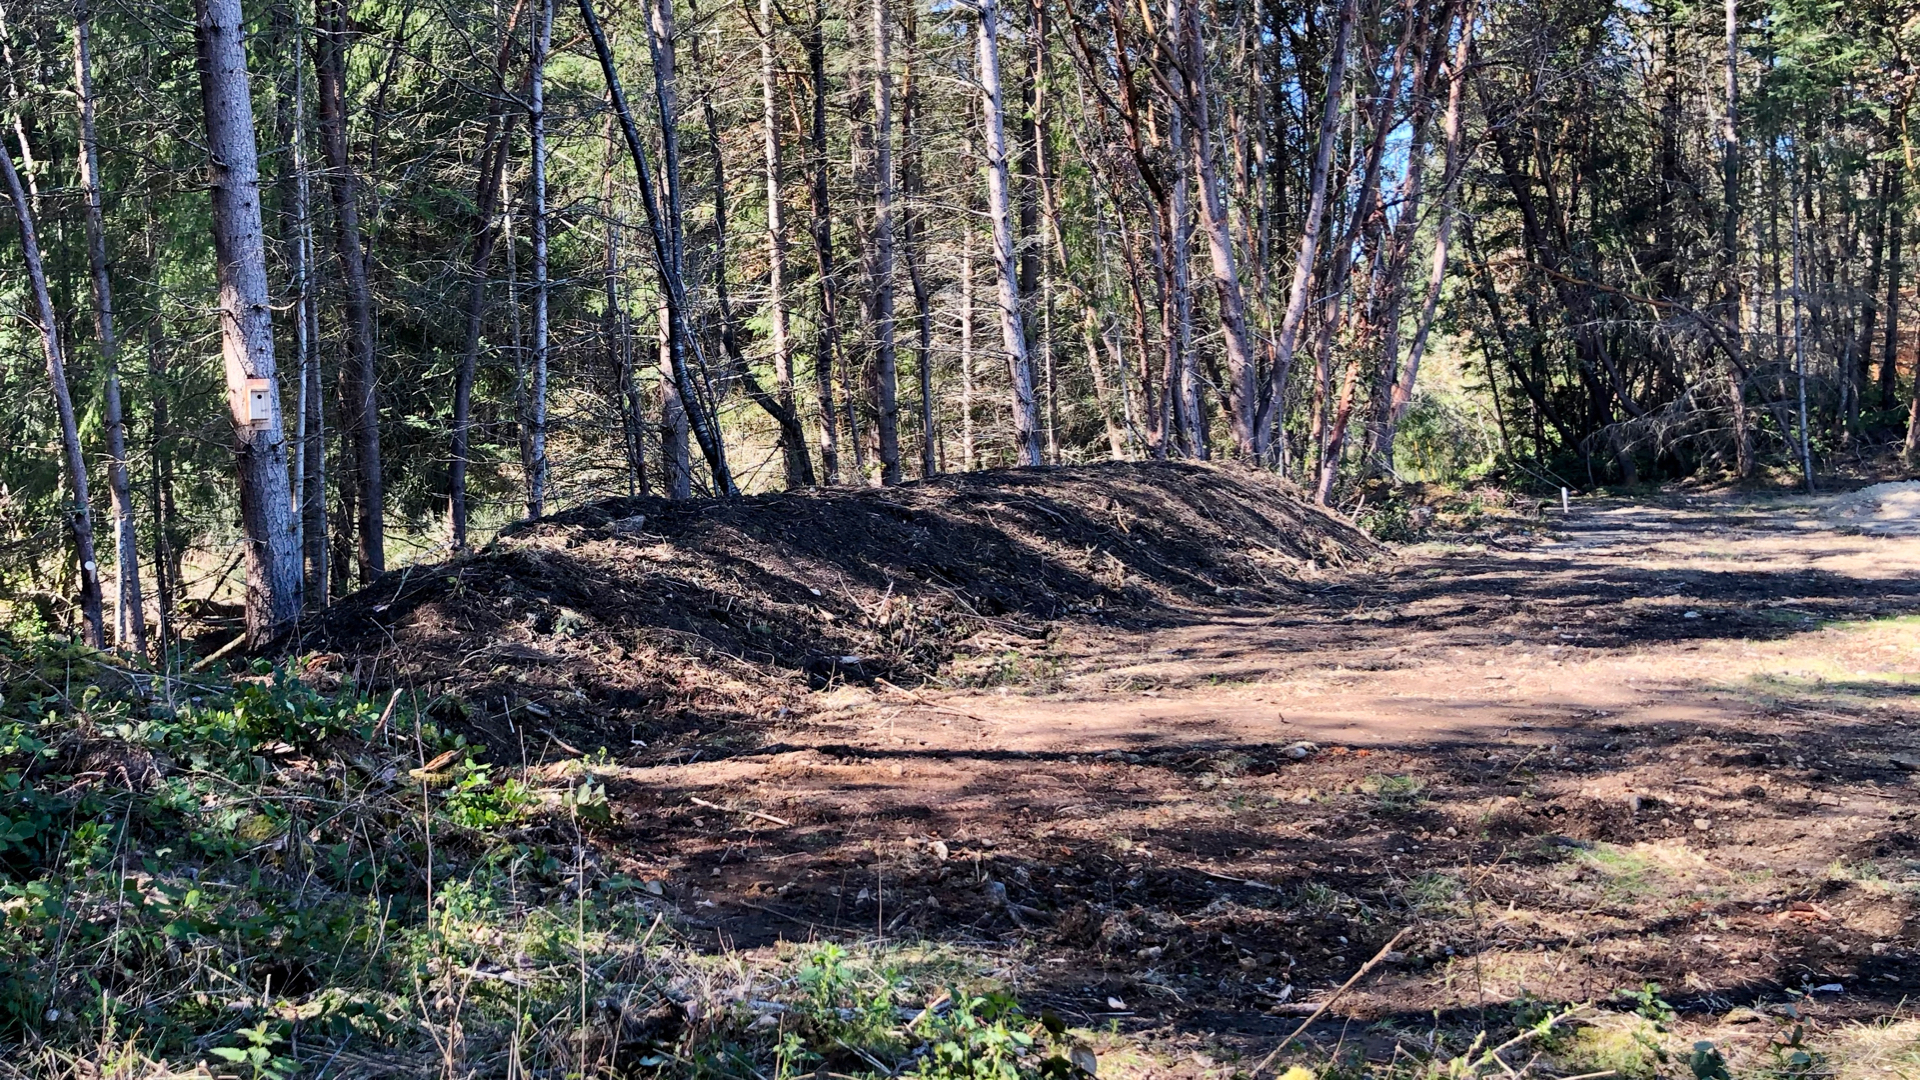 Along the back (front?) of the level top portion, the dirt he scraped all ended up as this great mound, giving some separation from the forest and small ditch/ravine between us and the road.